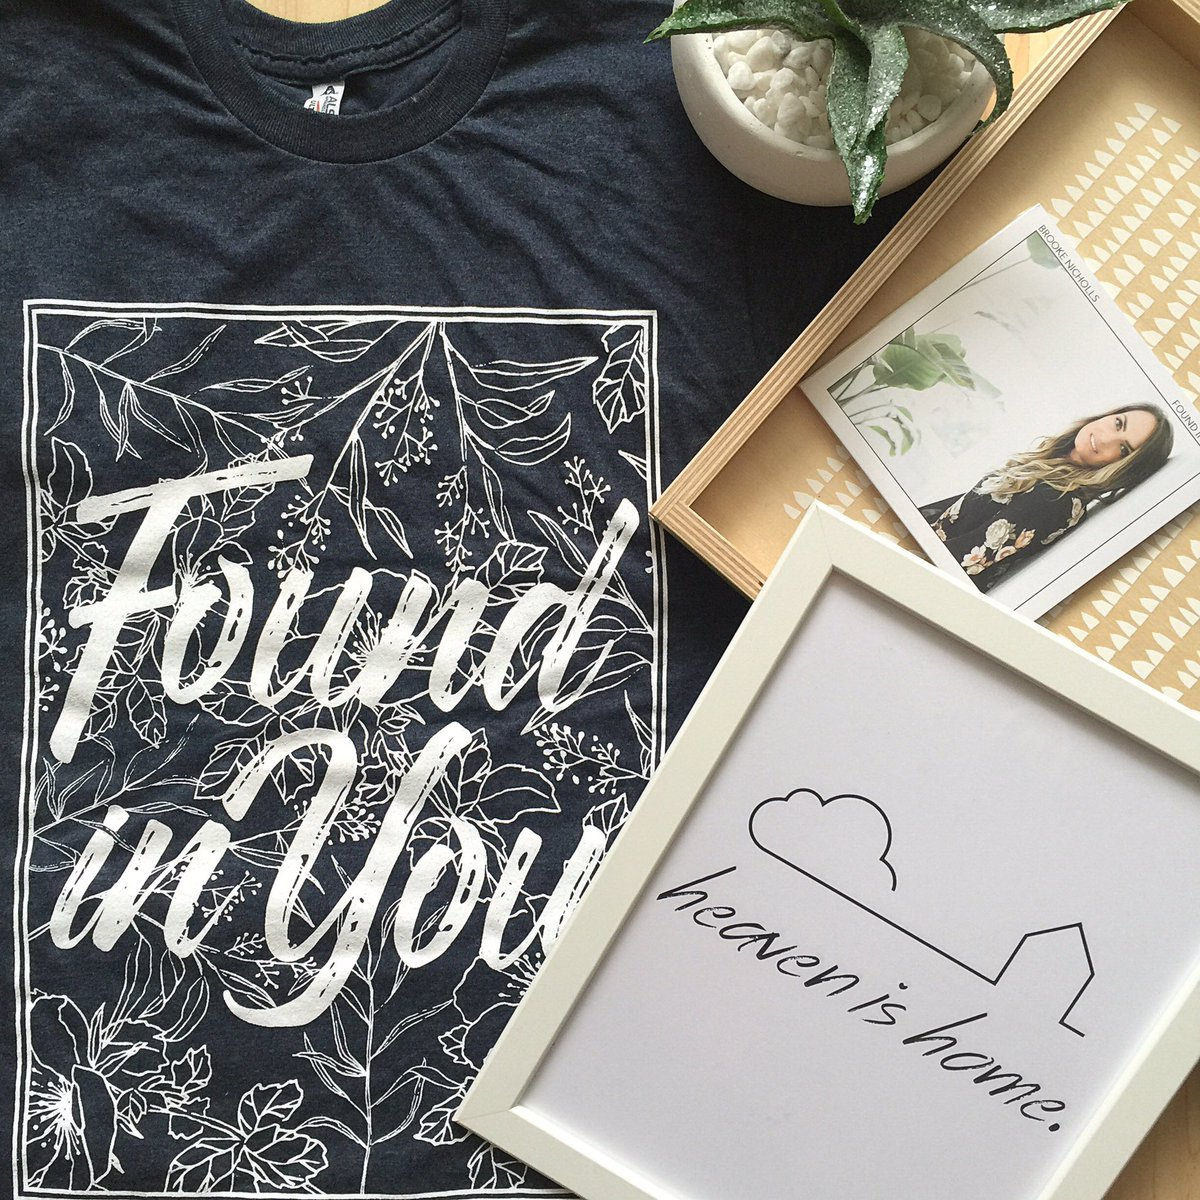 GIVEAWAY! // RETWEET this for a chance to win a copy of my NEW 'Found In You' album, shirt and print! Xx